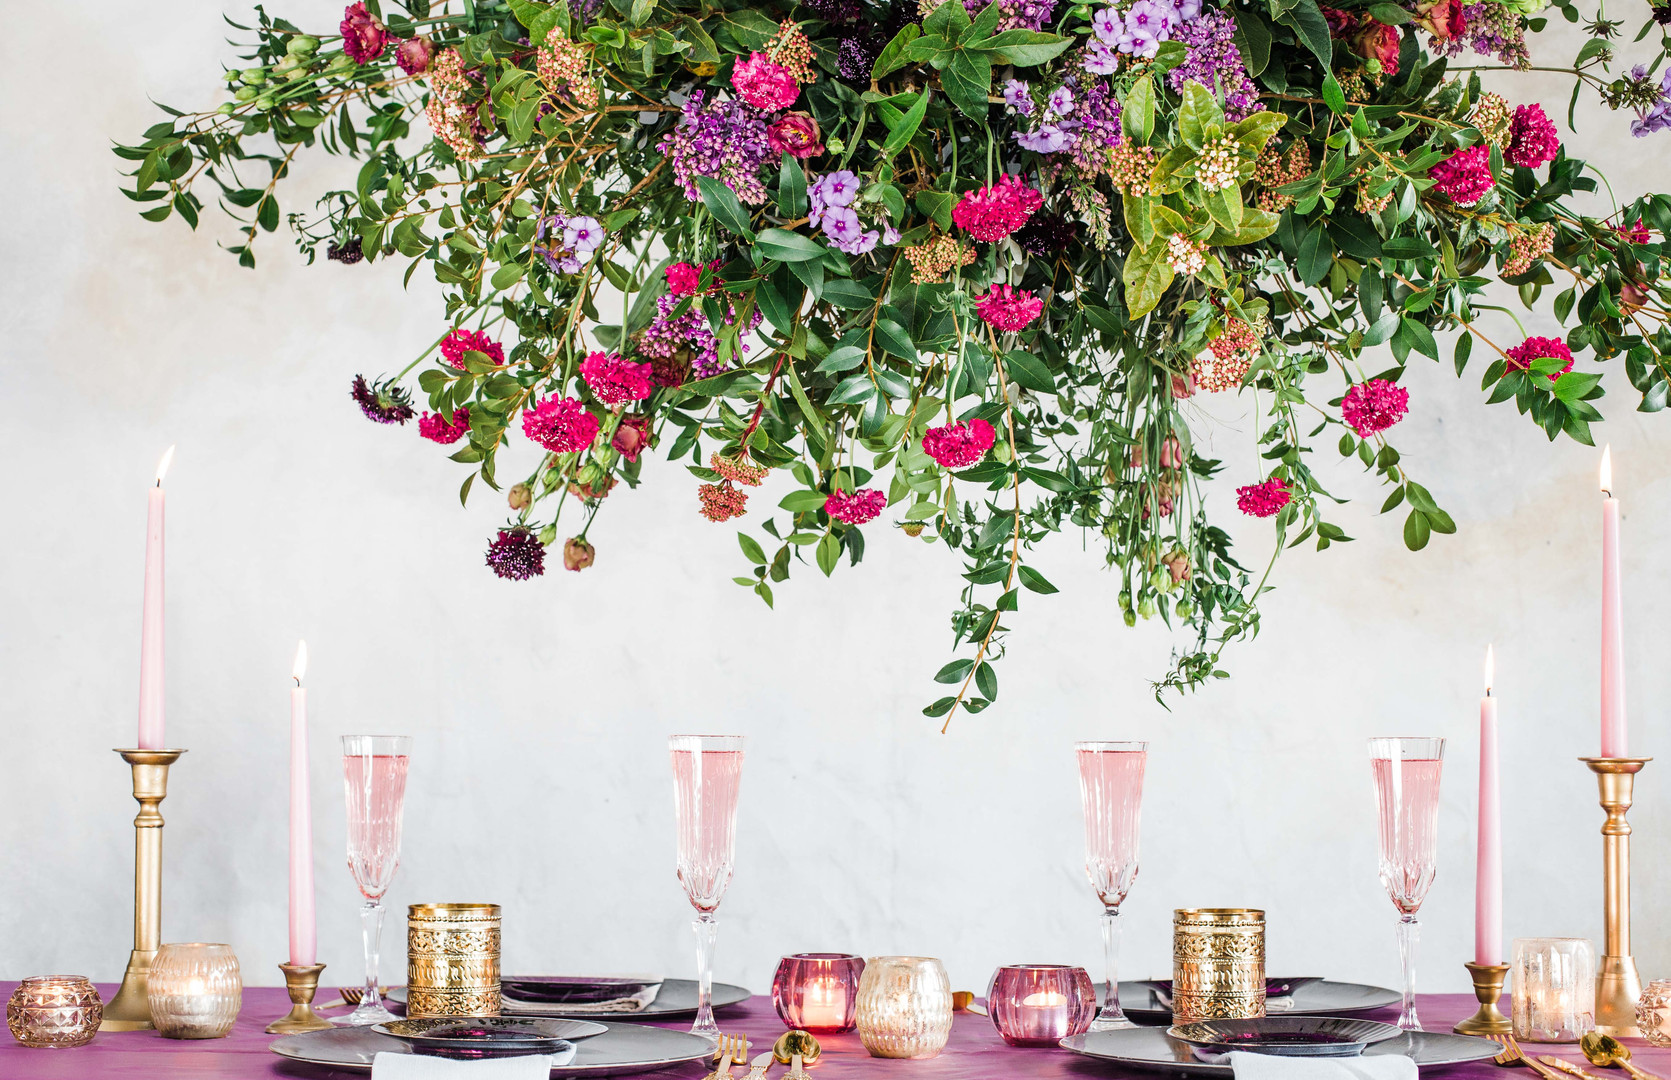 A large hanging floral design in vibrant pinks and purples